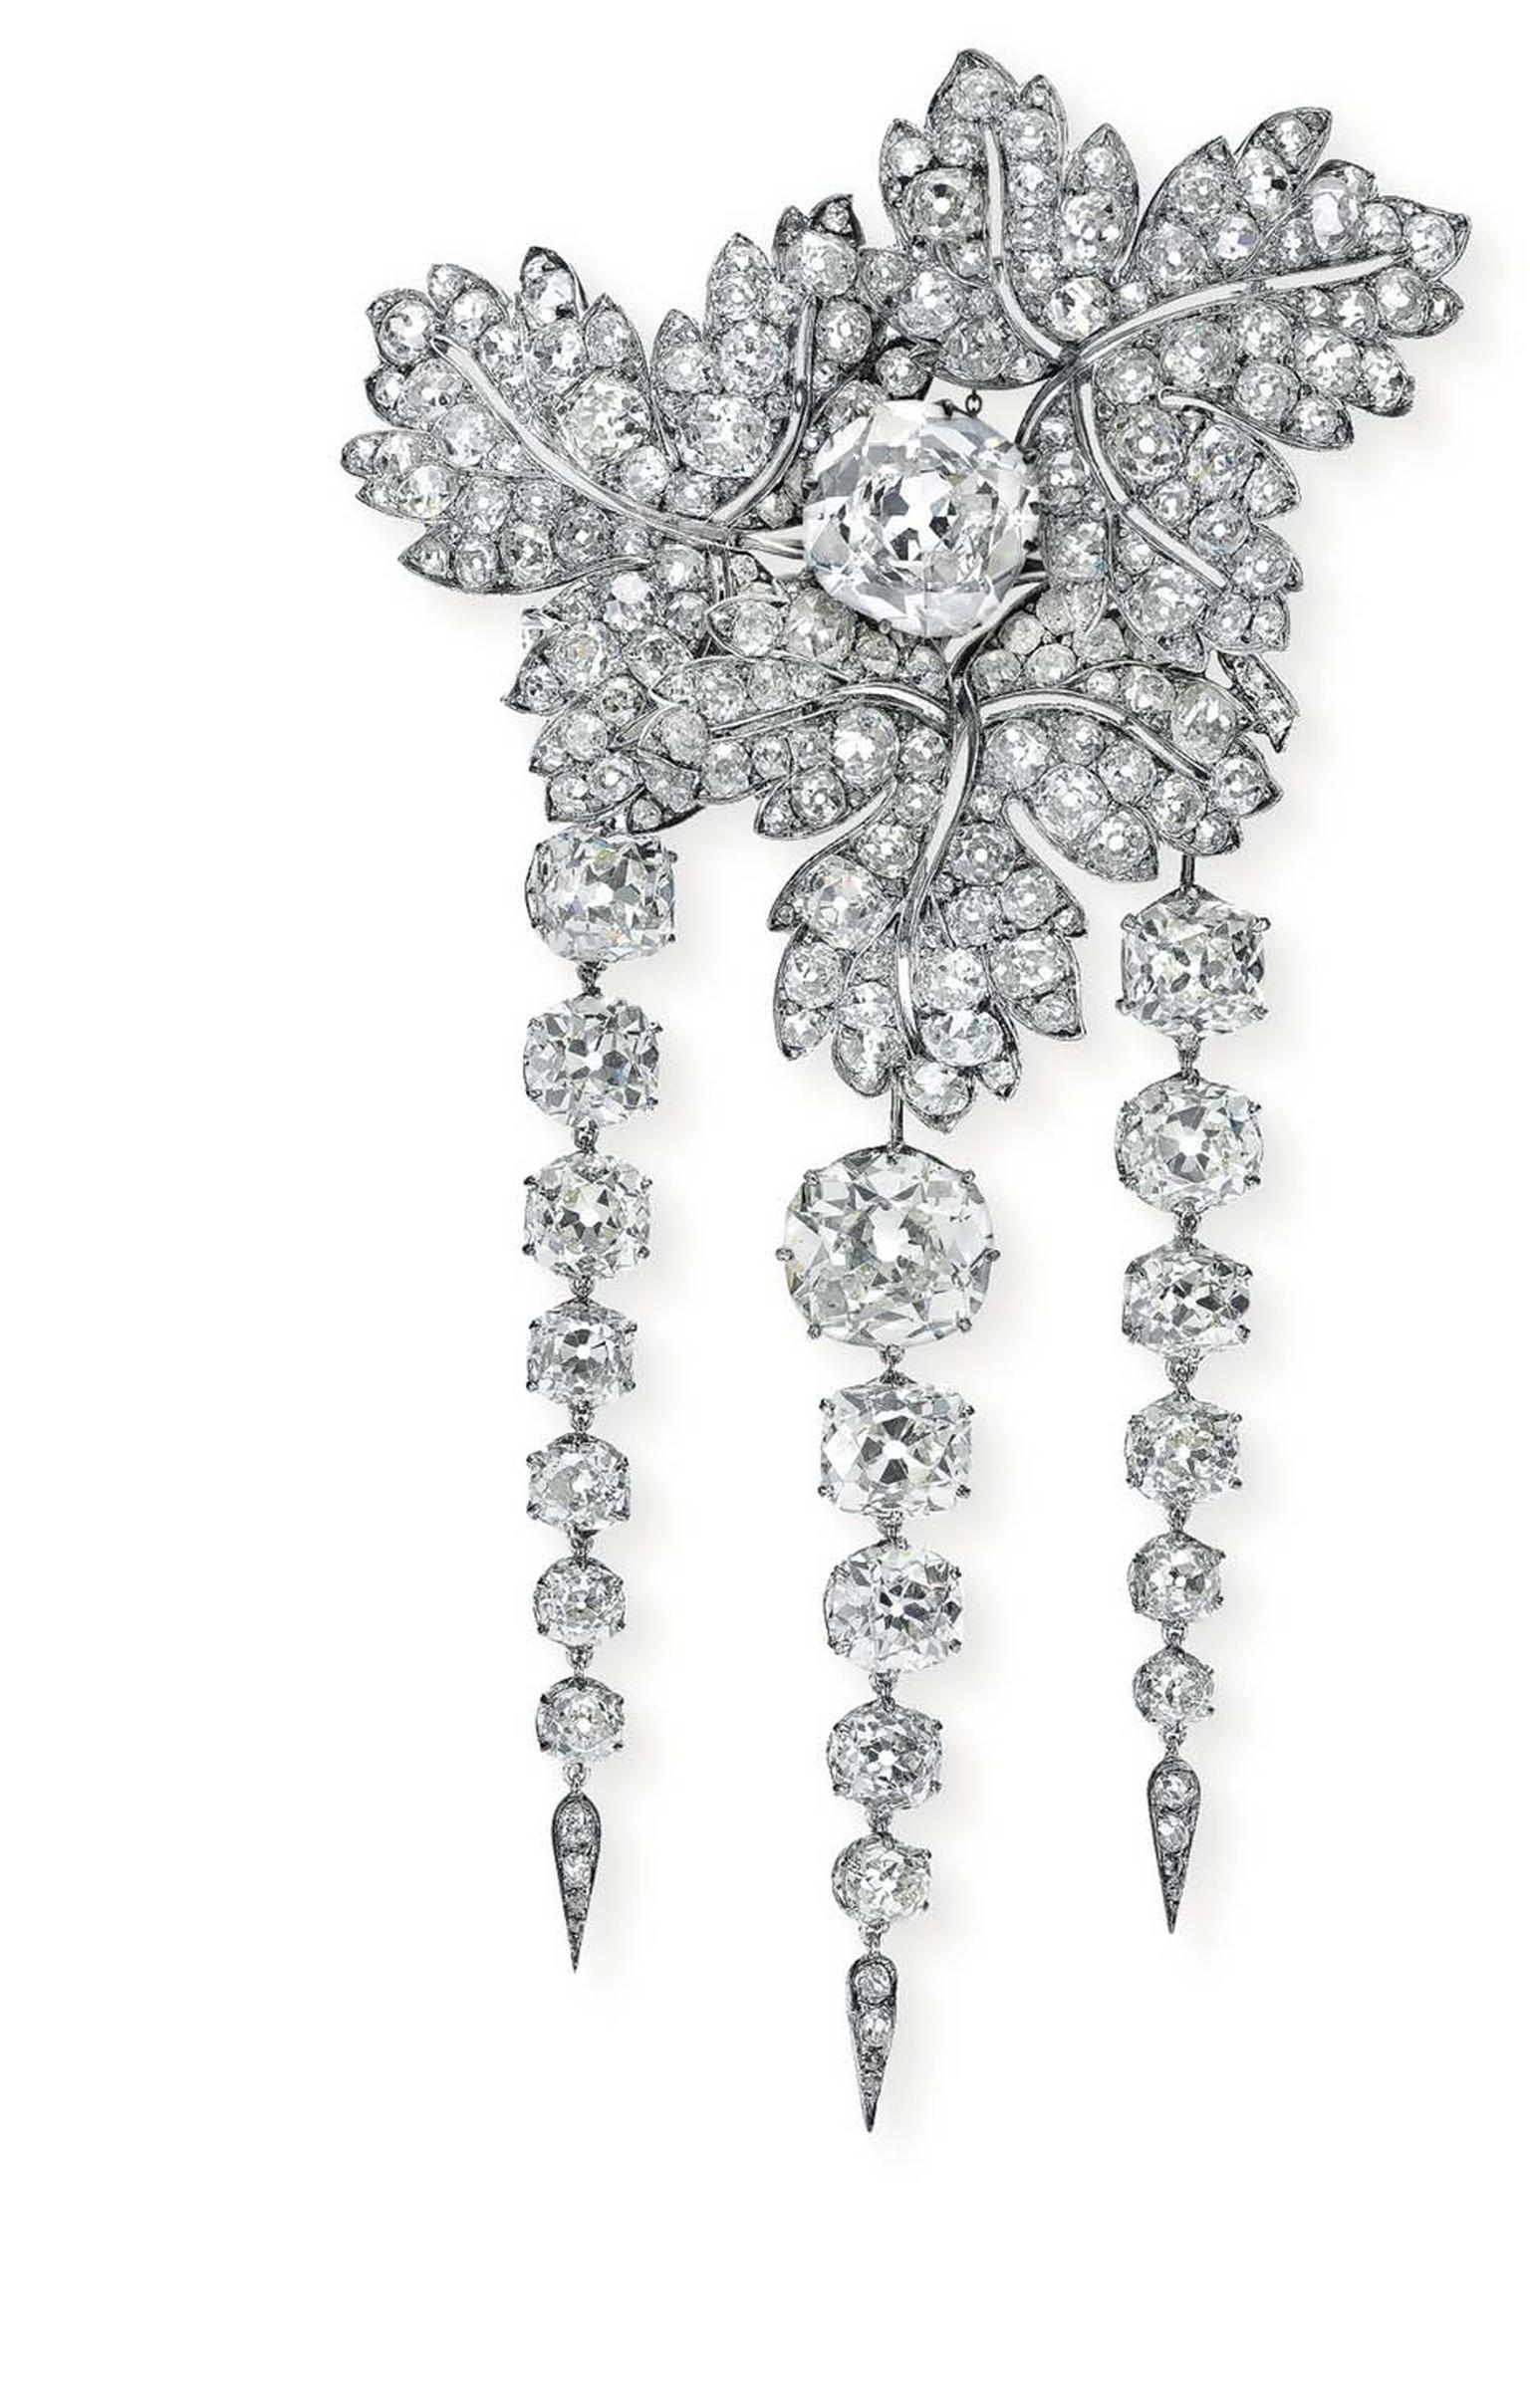 A brooch of royal provenance that once belonged to Empress Eugenie of France will be auctioned at Christie's Geneva on 11 November 2014 as part of its Magnificent Jewels sale (estimate: $2-3 million).